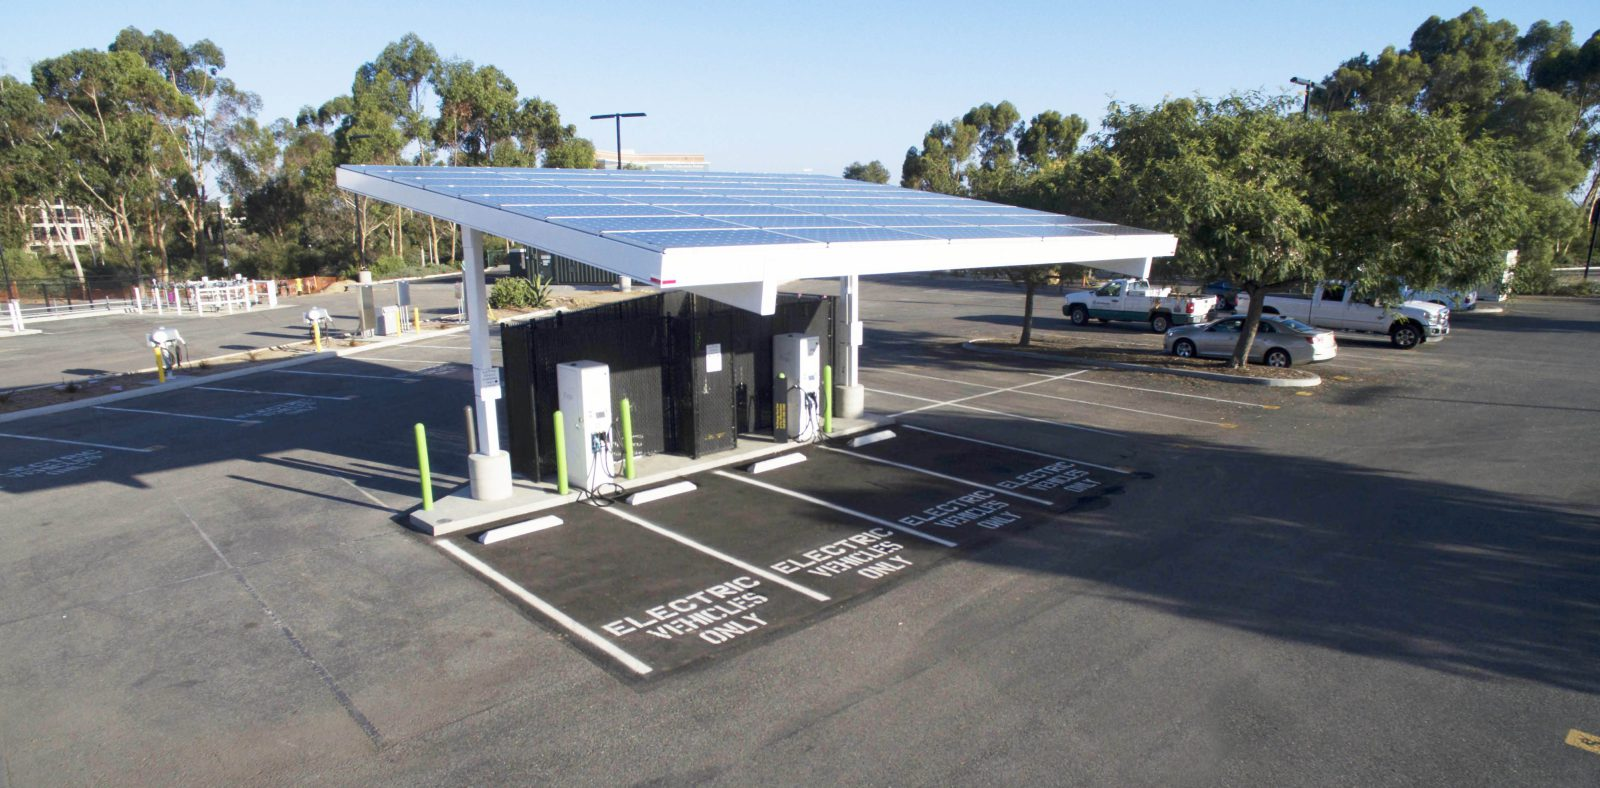 Chevron starts deploying EV charging stations at its gas stations